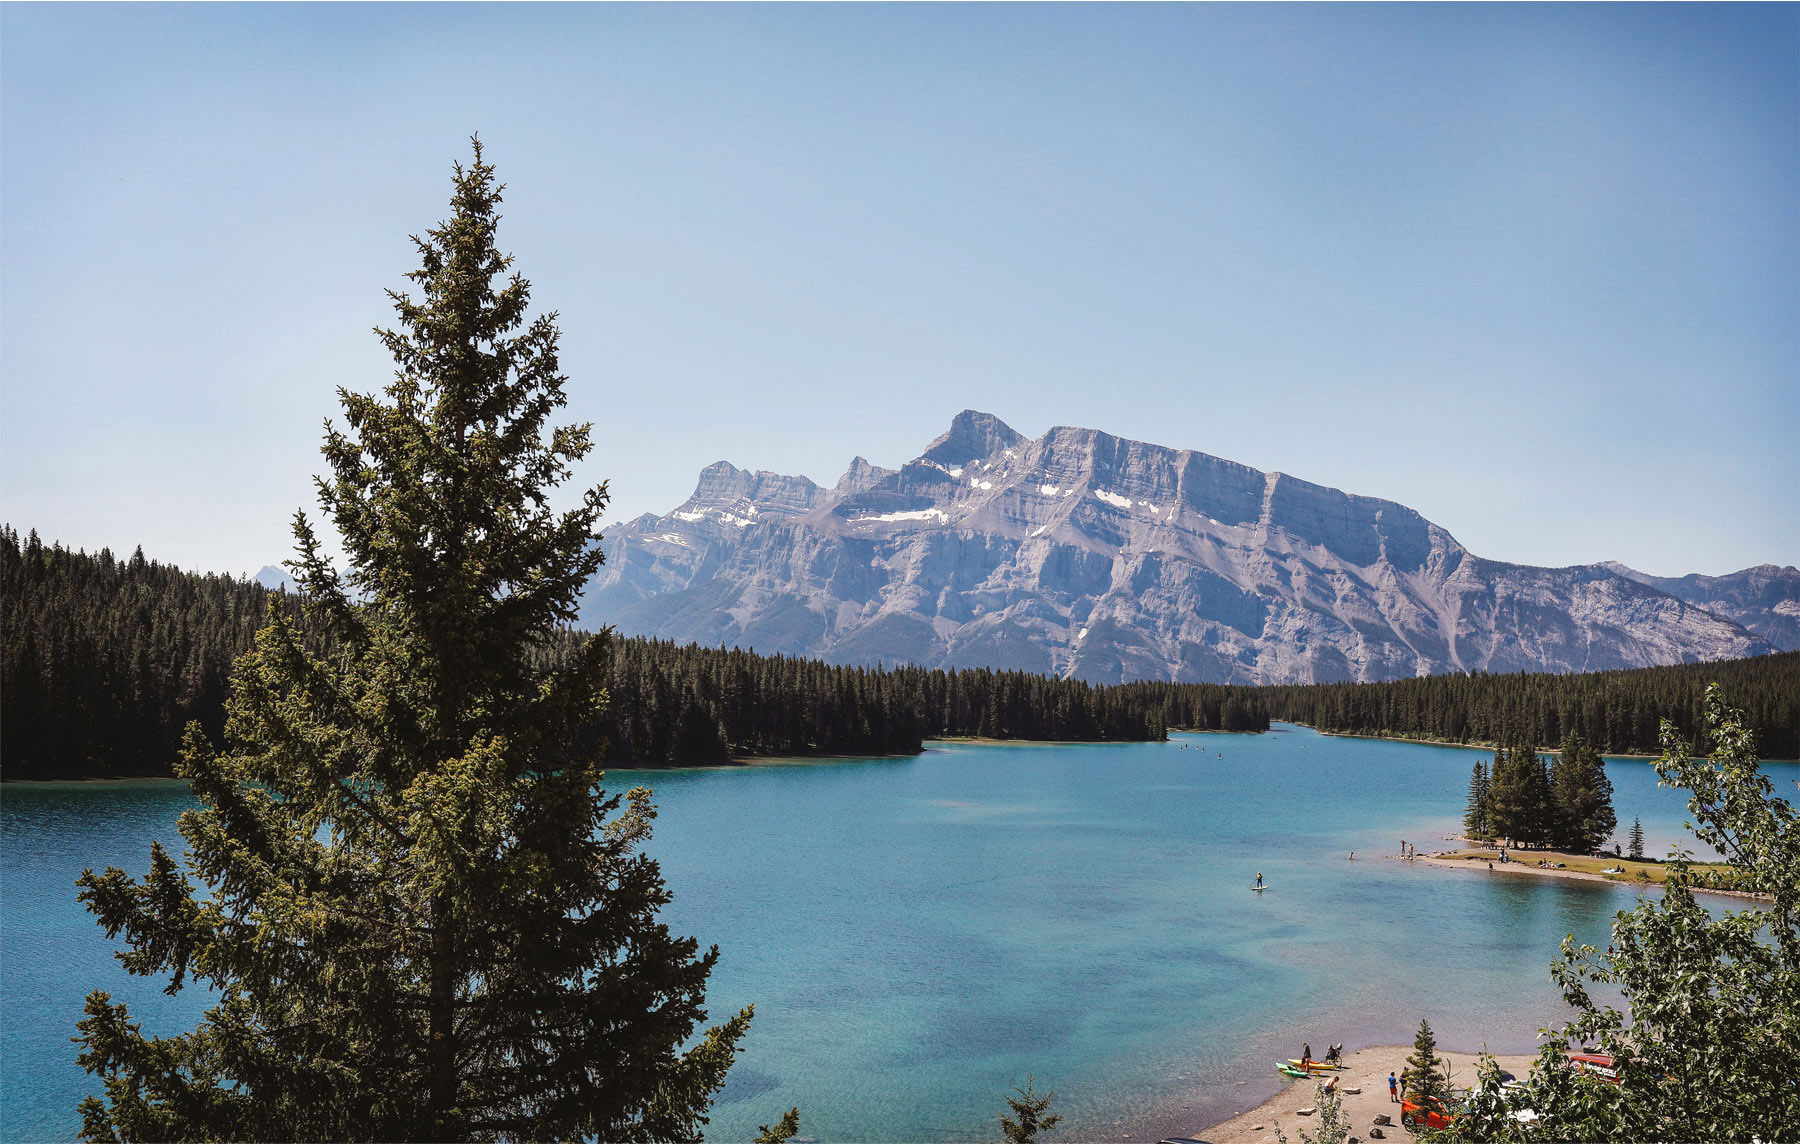 12-Banff-Canada-Engagement-Photography-by-Vick-Photography-Lake-Louise-Mountains-Lizz-and-Brady.jpg